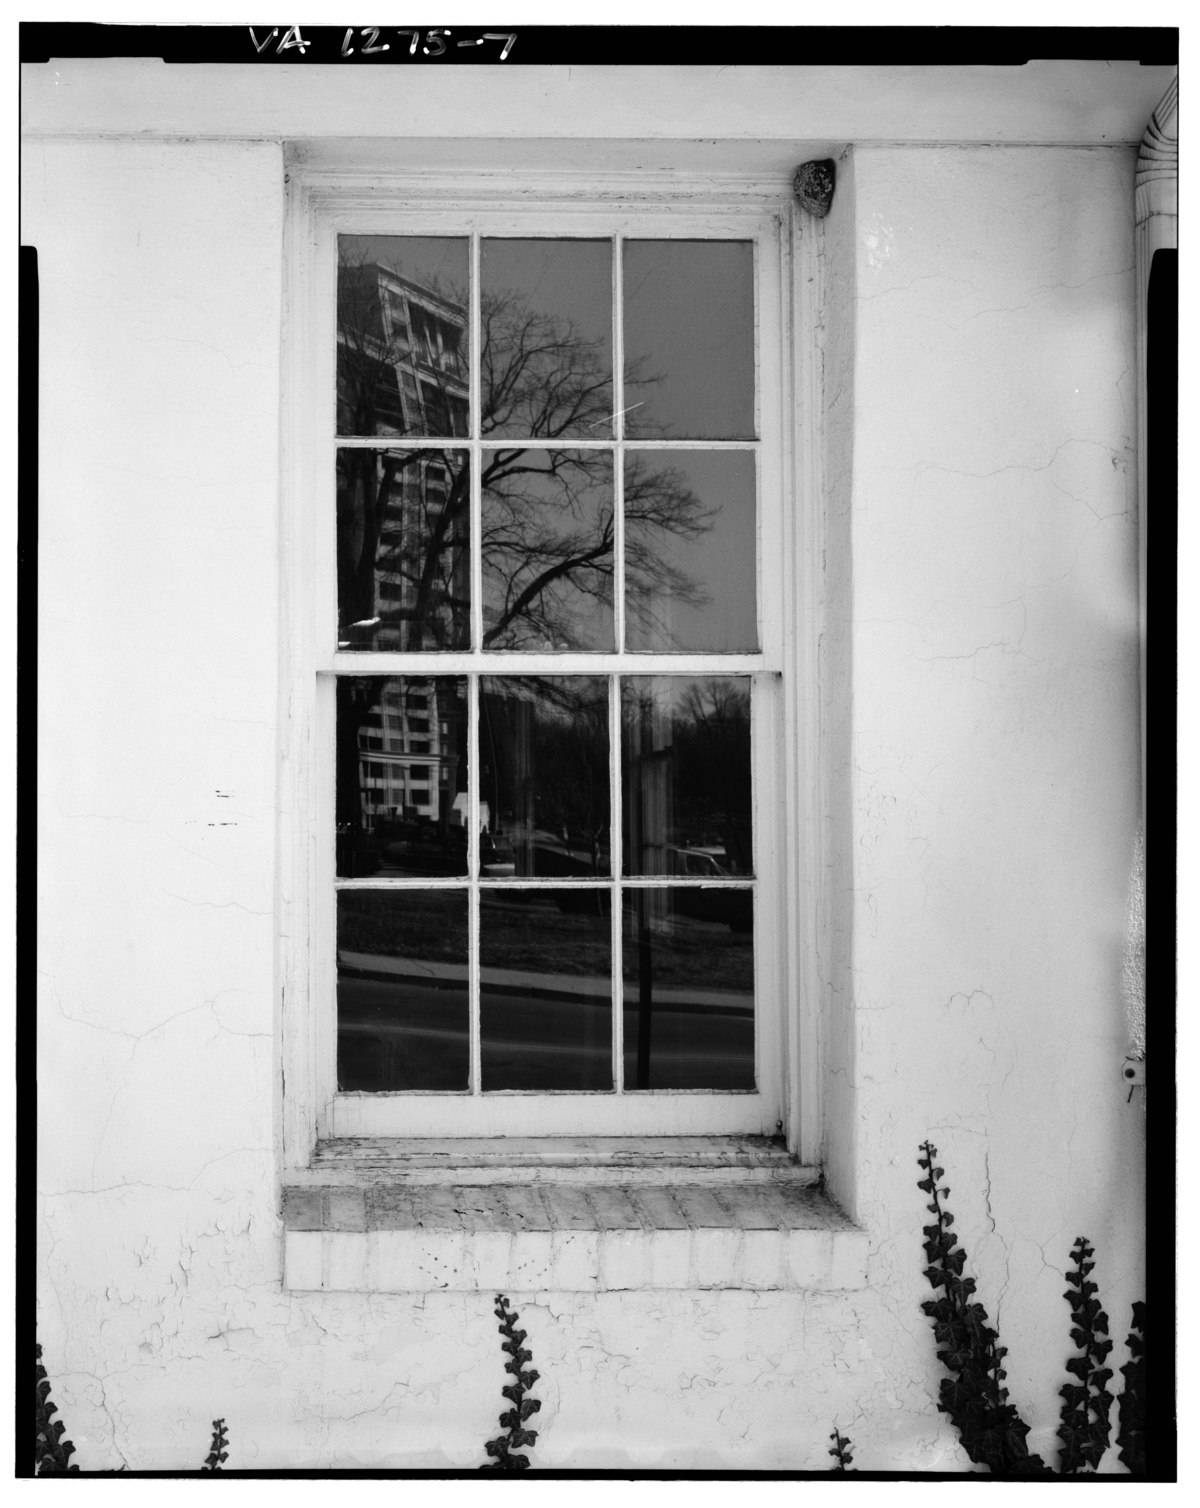 & Sash window - Wikipedia